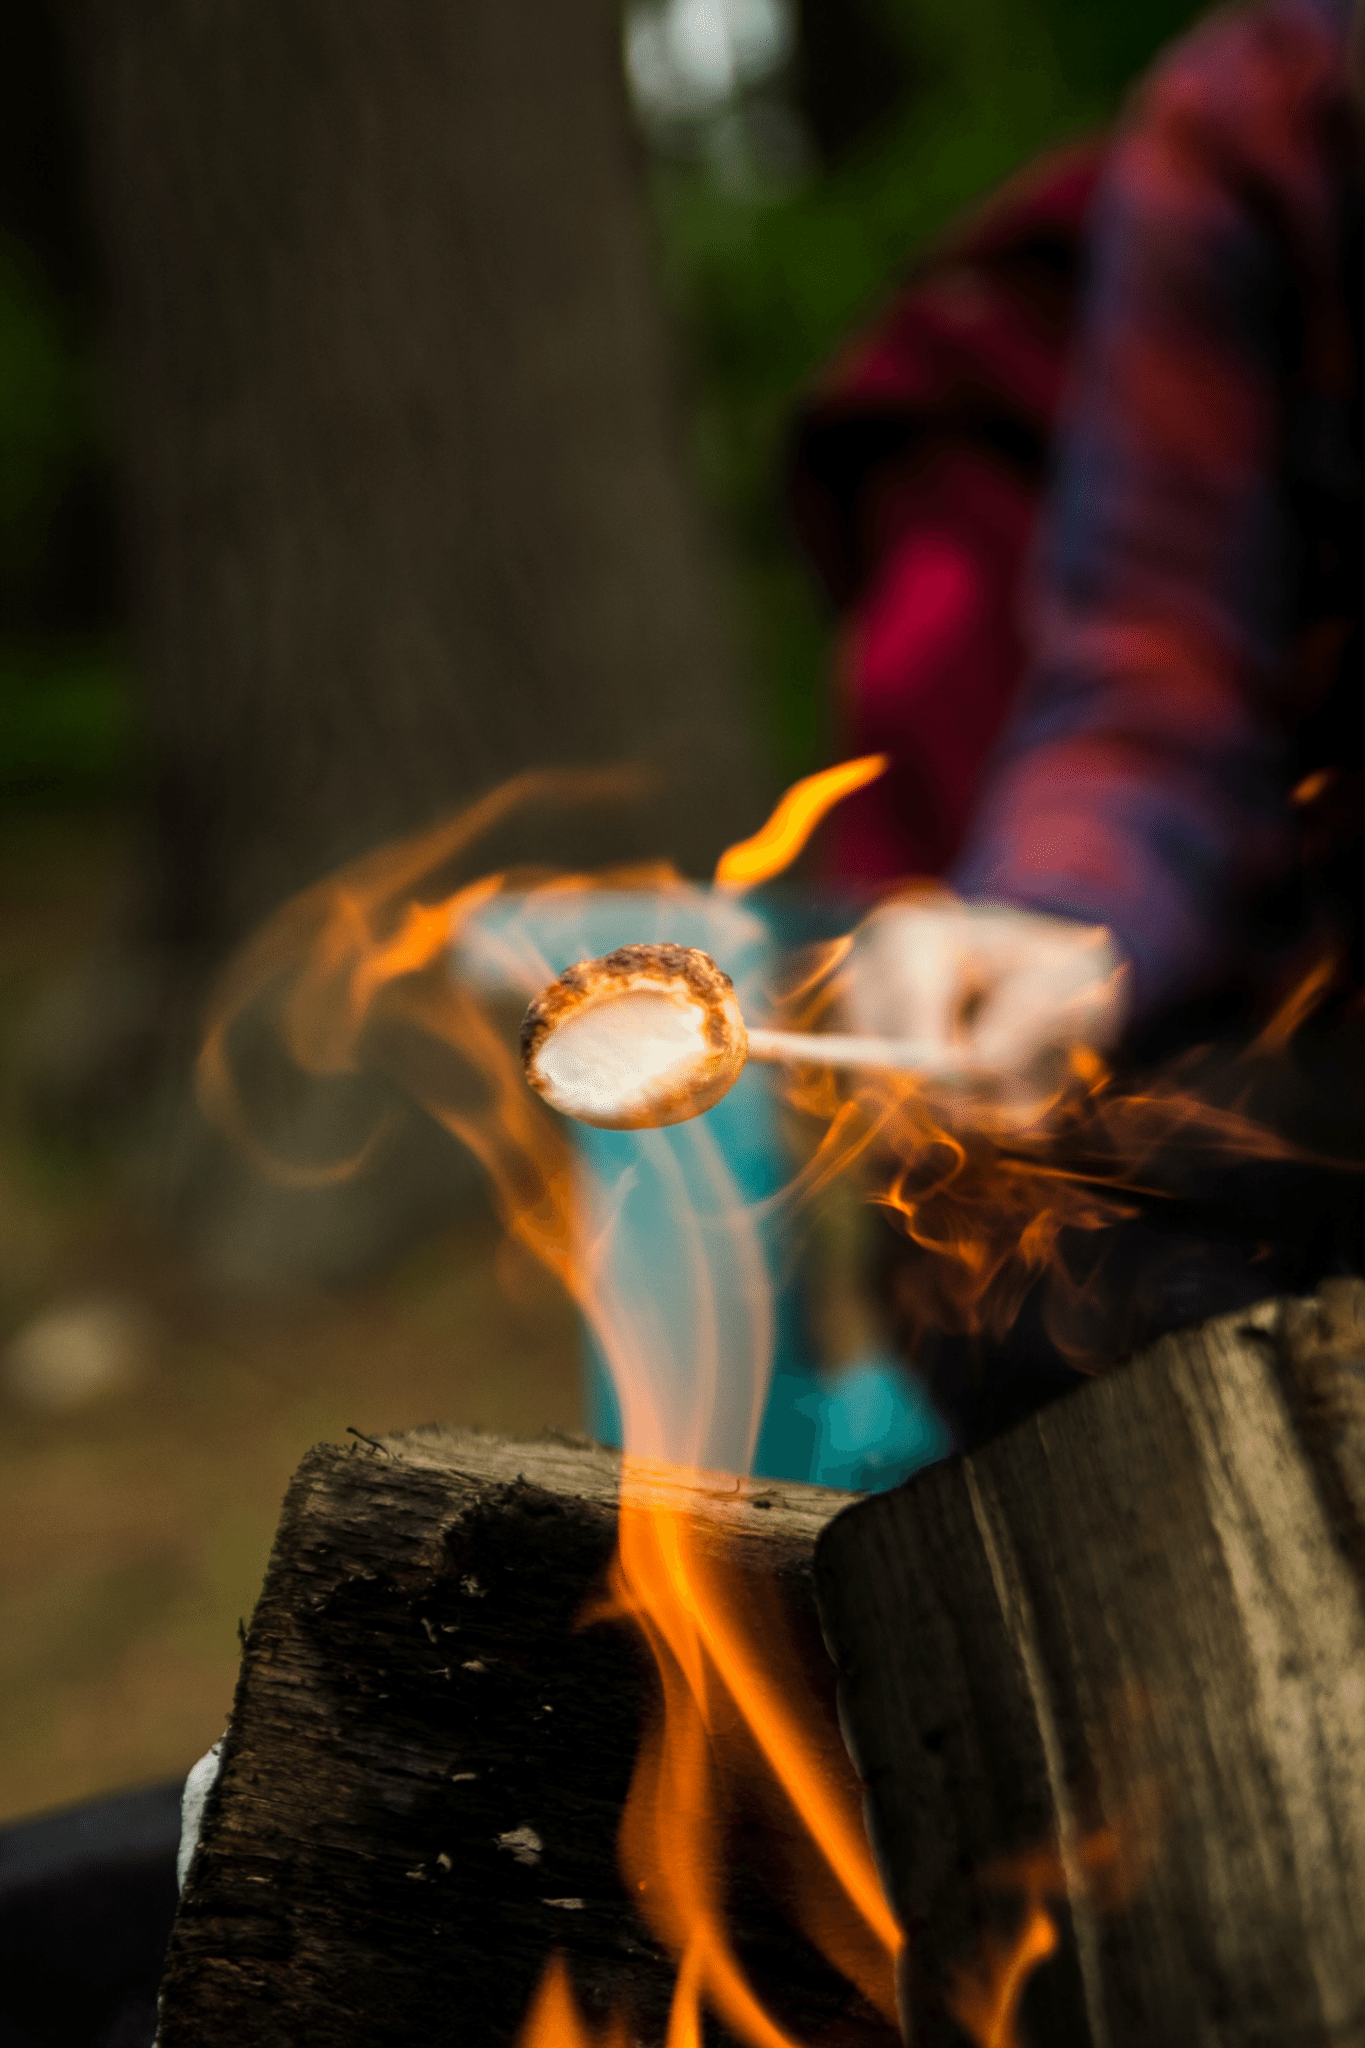 Toasting marshmallows over an open log fire